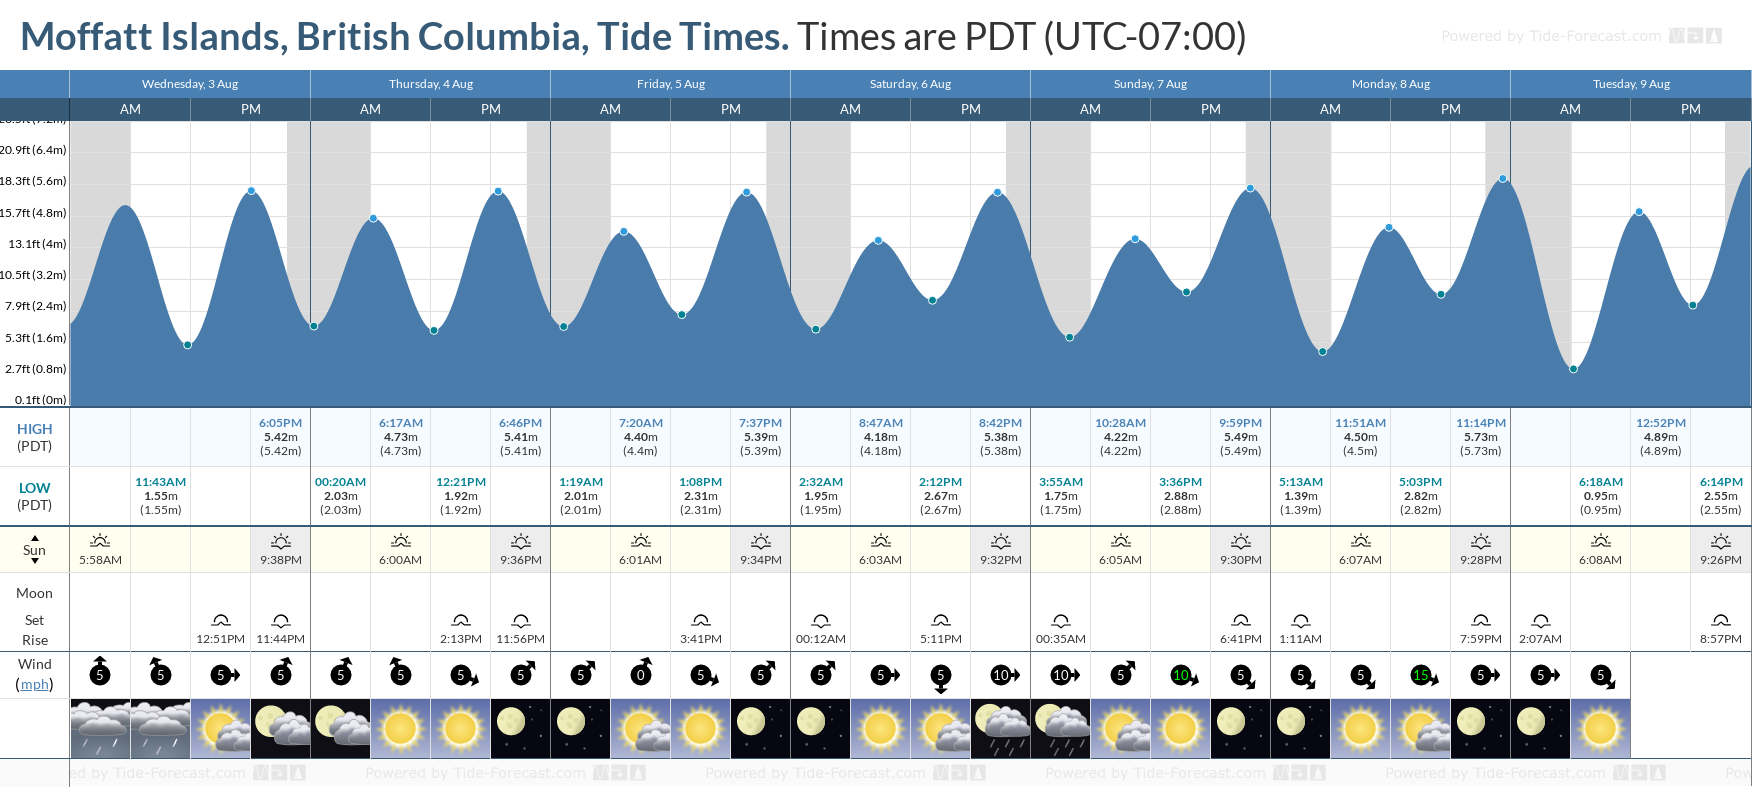 Moffatt Islands, British Columbia Tide Chart including high and low tide tide times for the next 7 days